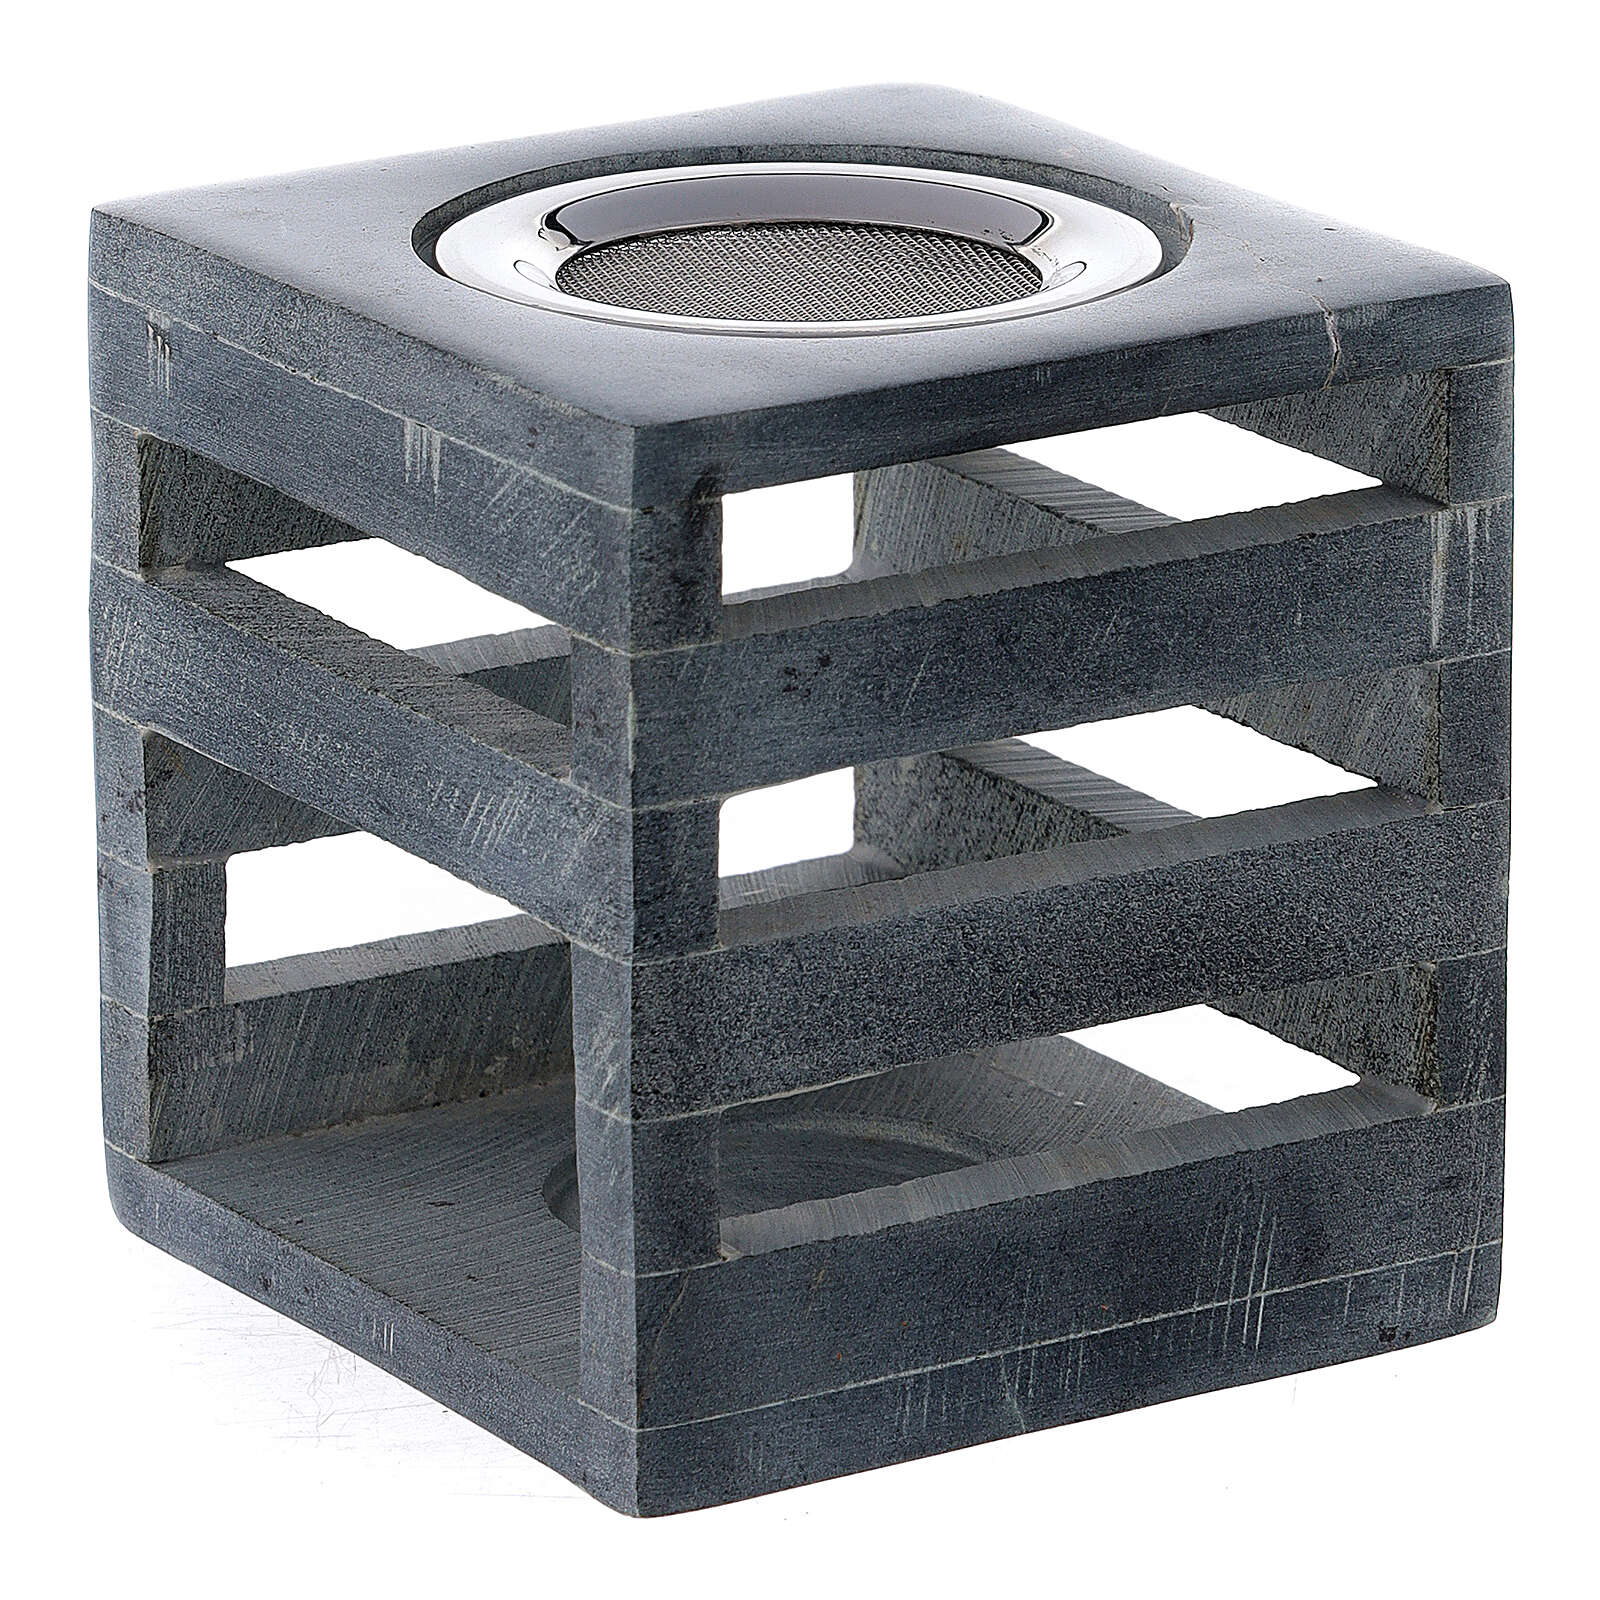 Cubic cut-out incense burner in soapstone 3 in 3